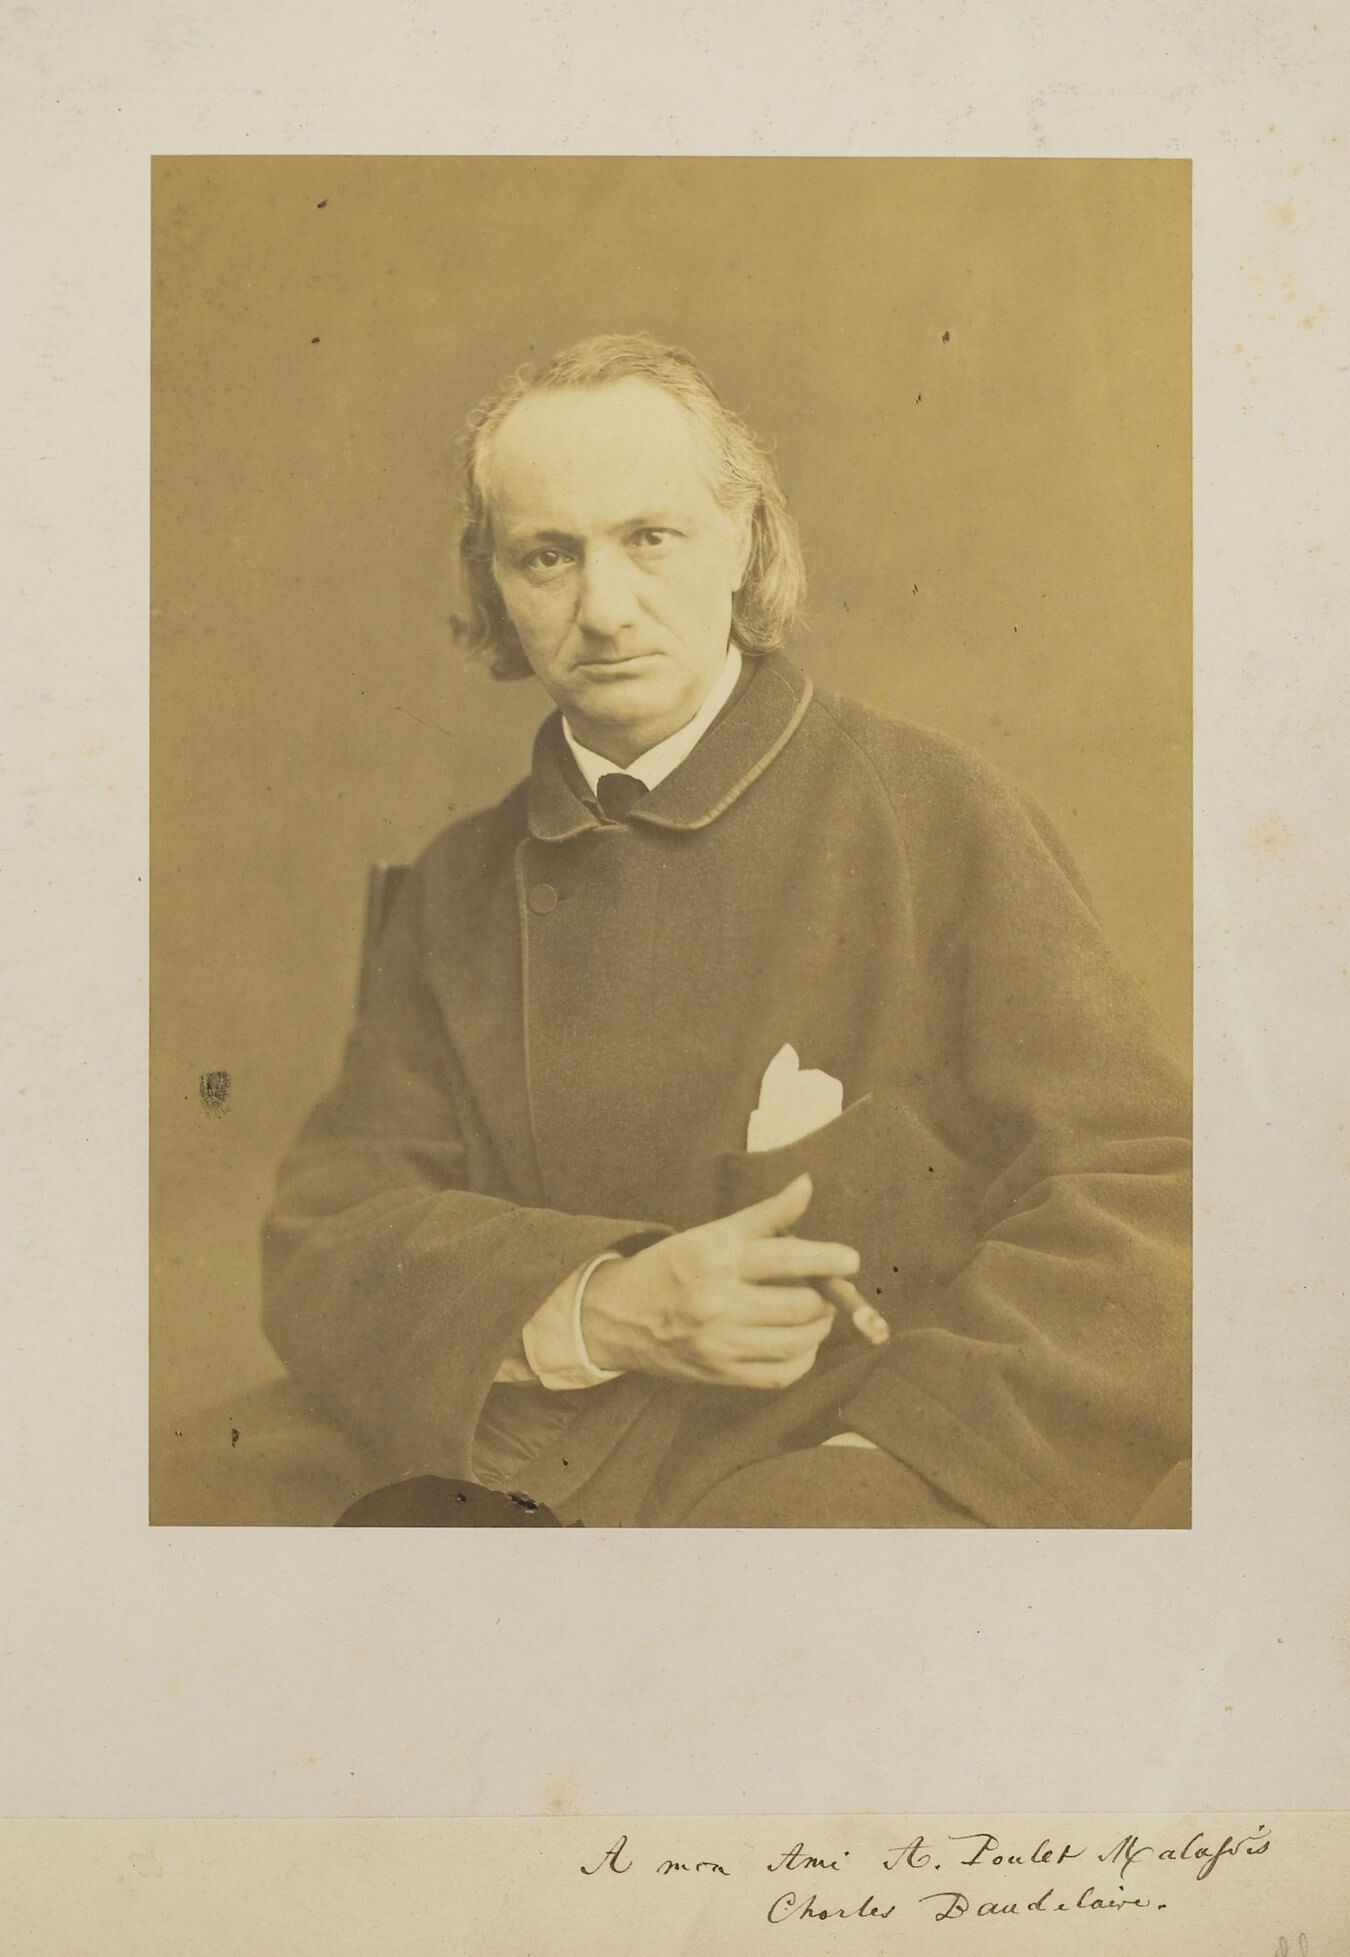 classic essays on photography baudelaire Baudelaire is central to benjamin's writings about paris and the arcades, and i'm aware that this influenced my essay and a couple of earlier pieces i wrote on this blog i suspect, though, that the whole picture is more complex.